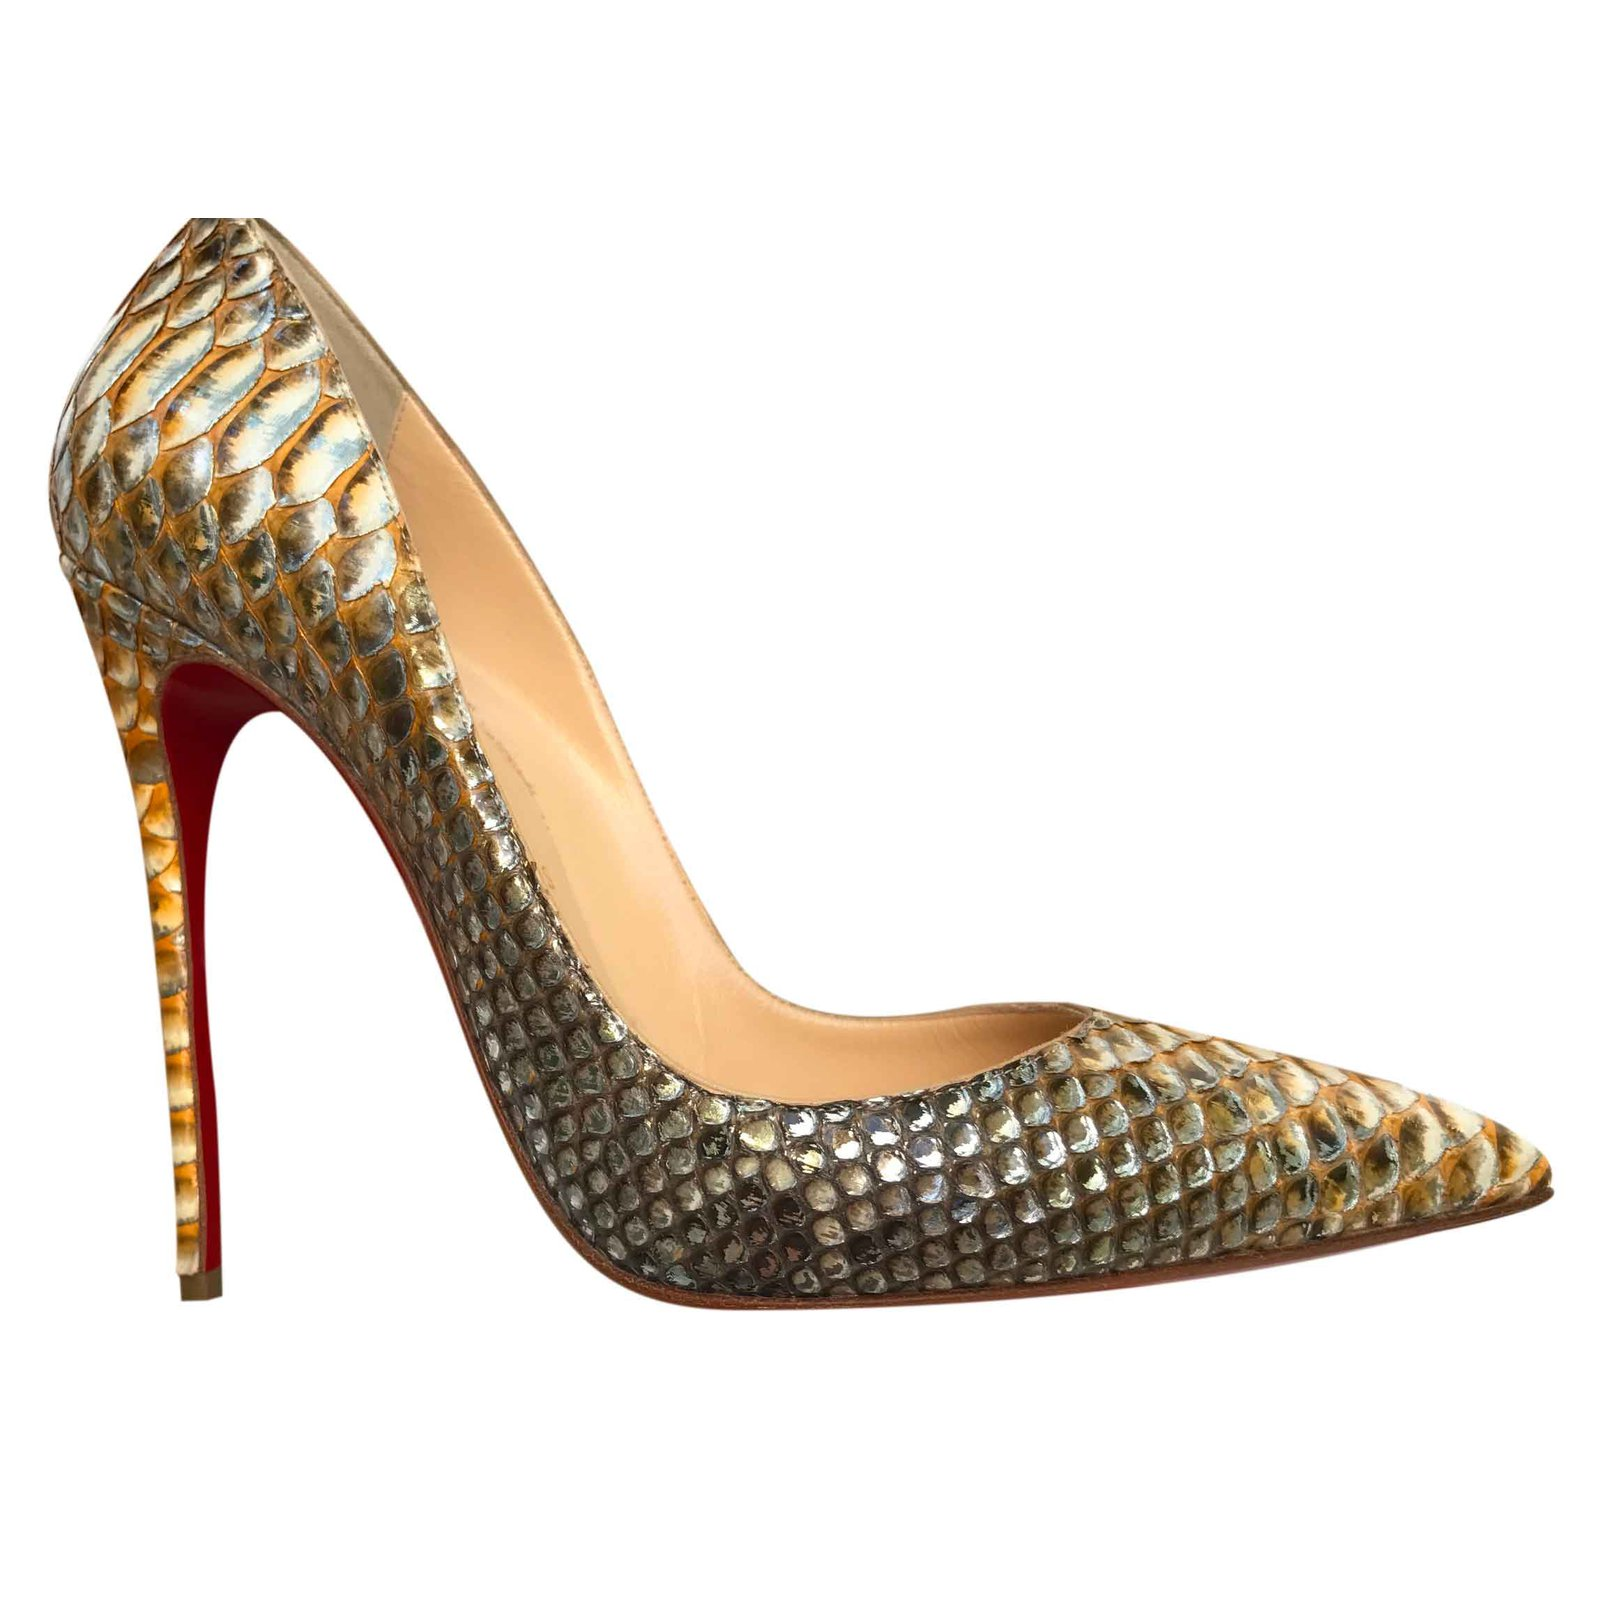 d03a6879d580 Christian Louboutin So Kate Tropicana Heels Exotic leather Python print  ref.26024